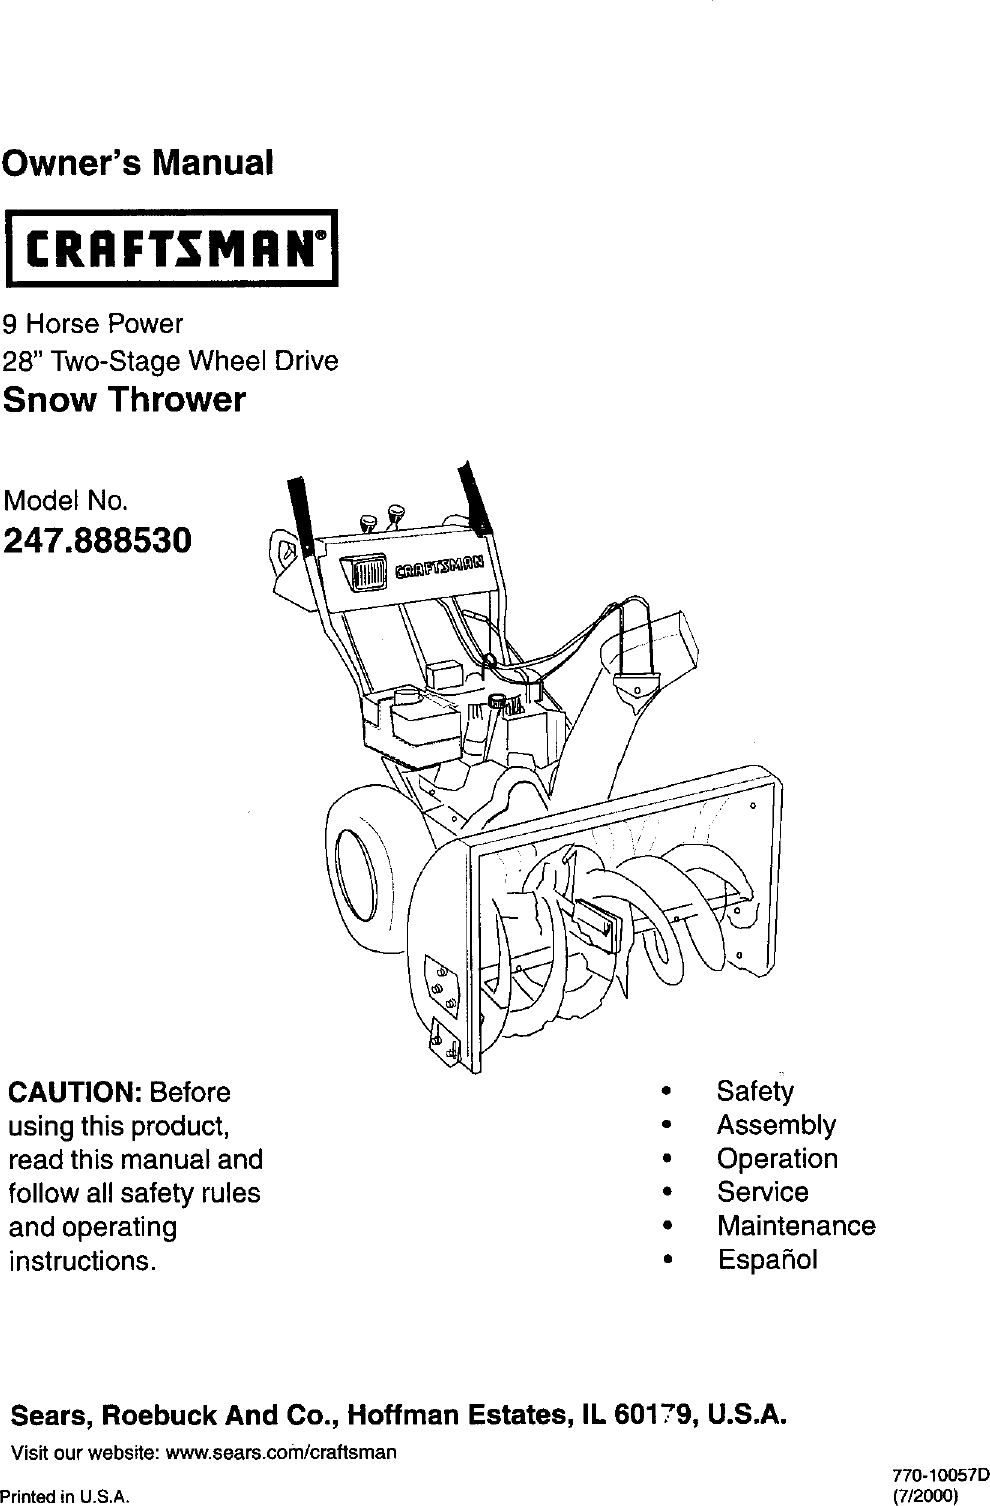 MTD 31AE558G099 User Manual 2 STAGE 9 HP 28 Manuals And